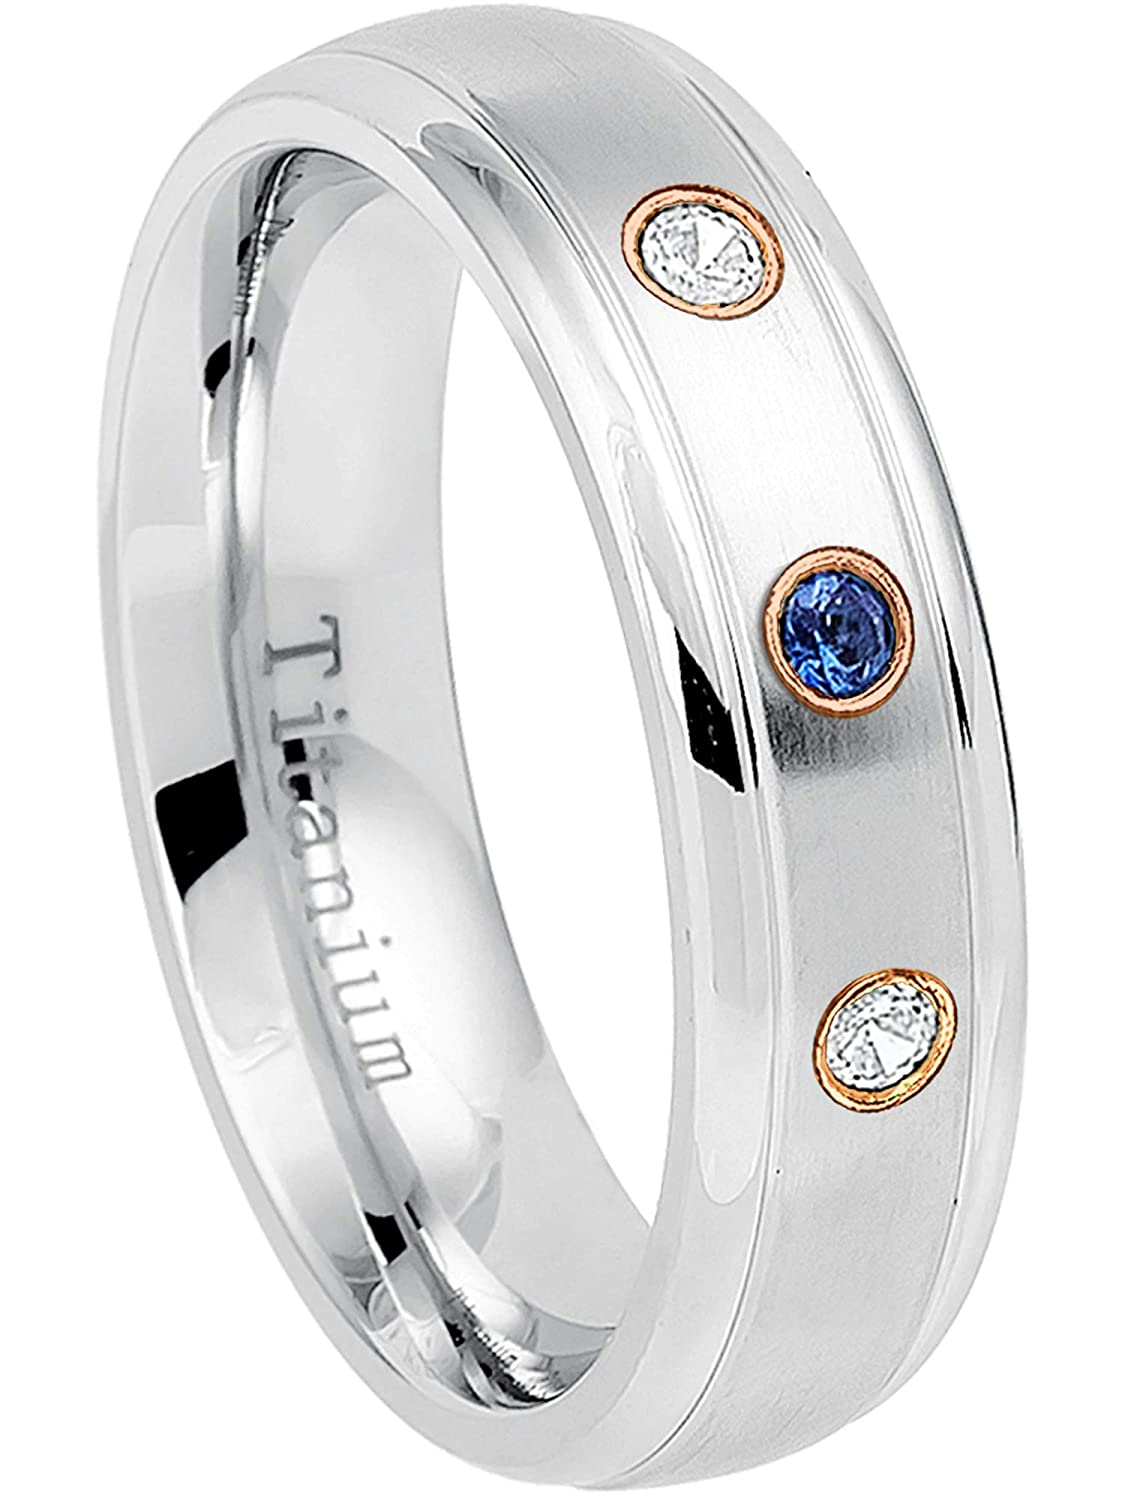 6MM Brushed Finish Comfort Fit Dome White Wedding Band 0.21ctw Blue Sapphire /& Diamond 3-Stone Titanium Ring